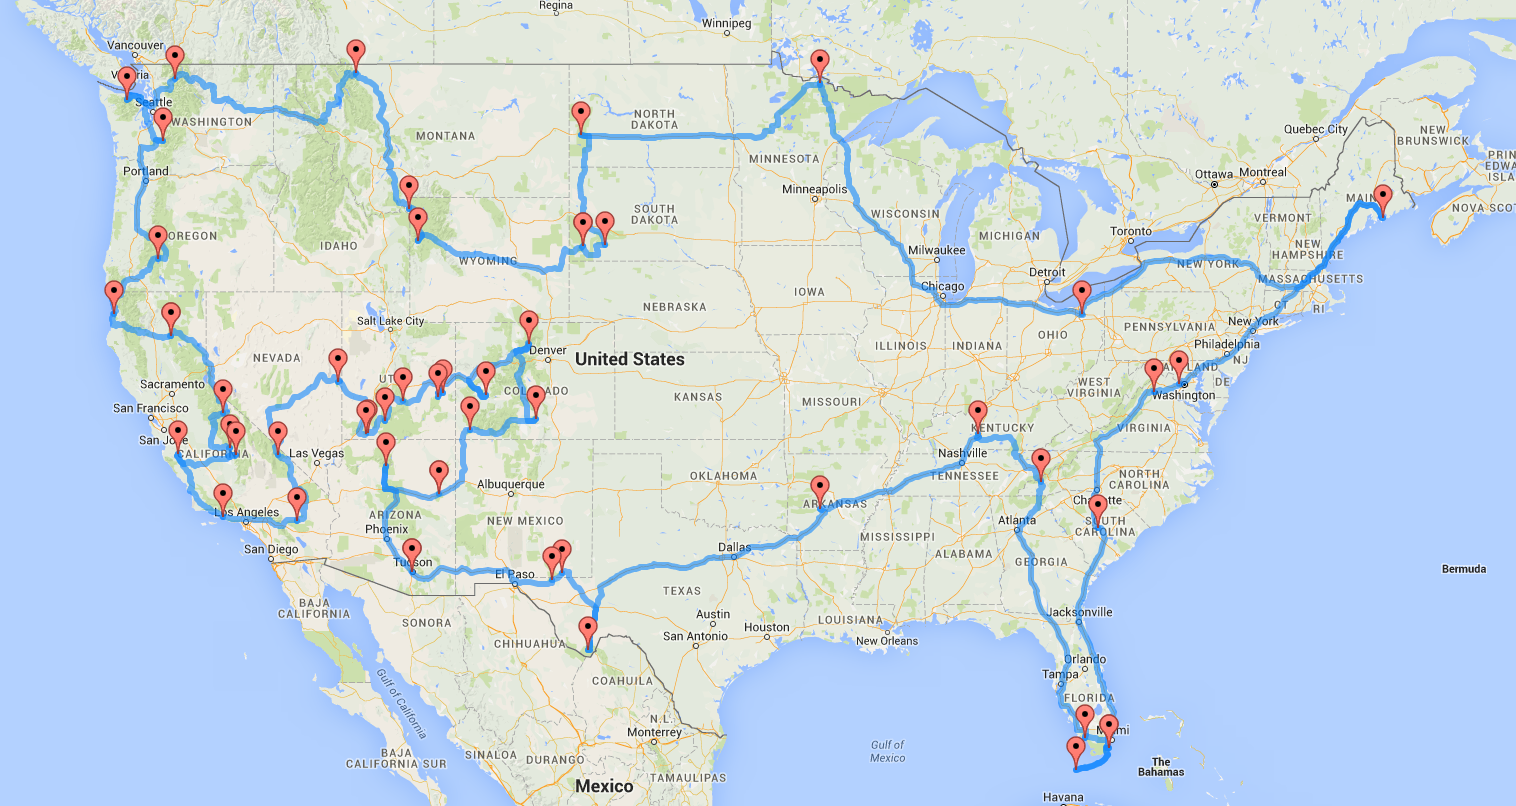 National Parks Road Trip